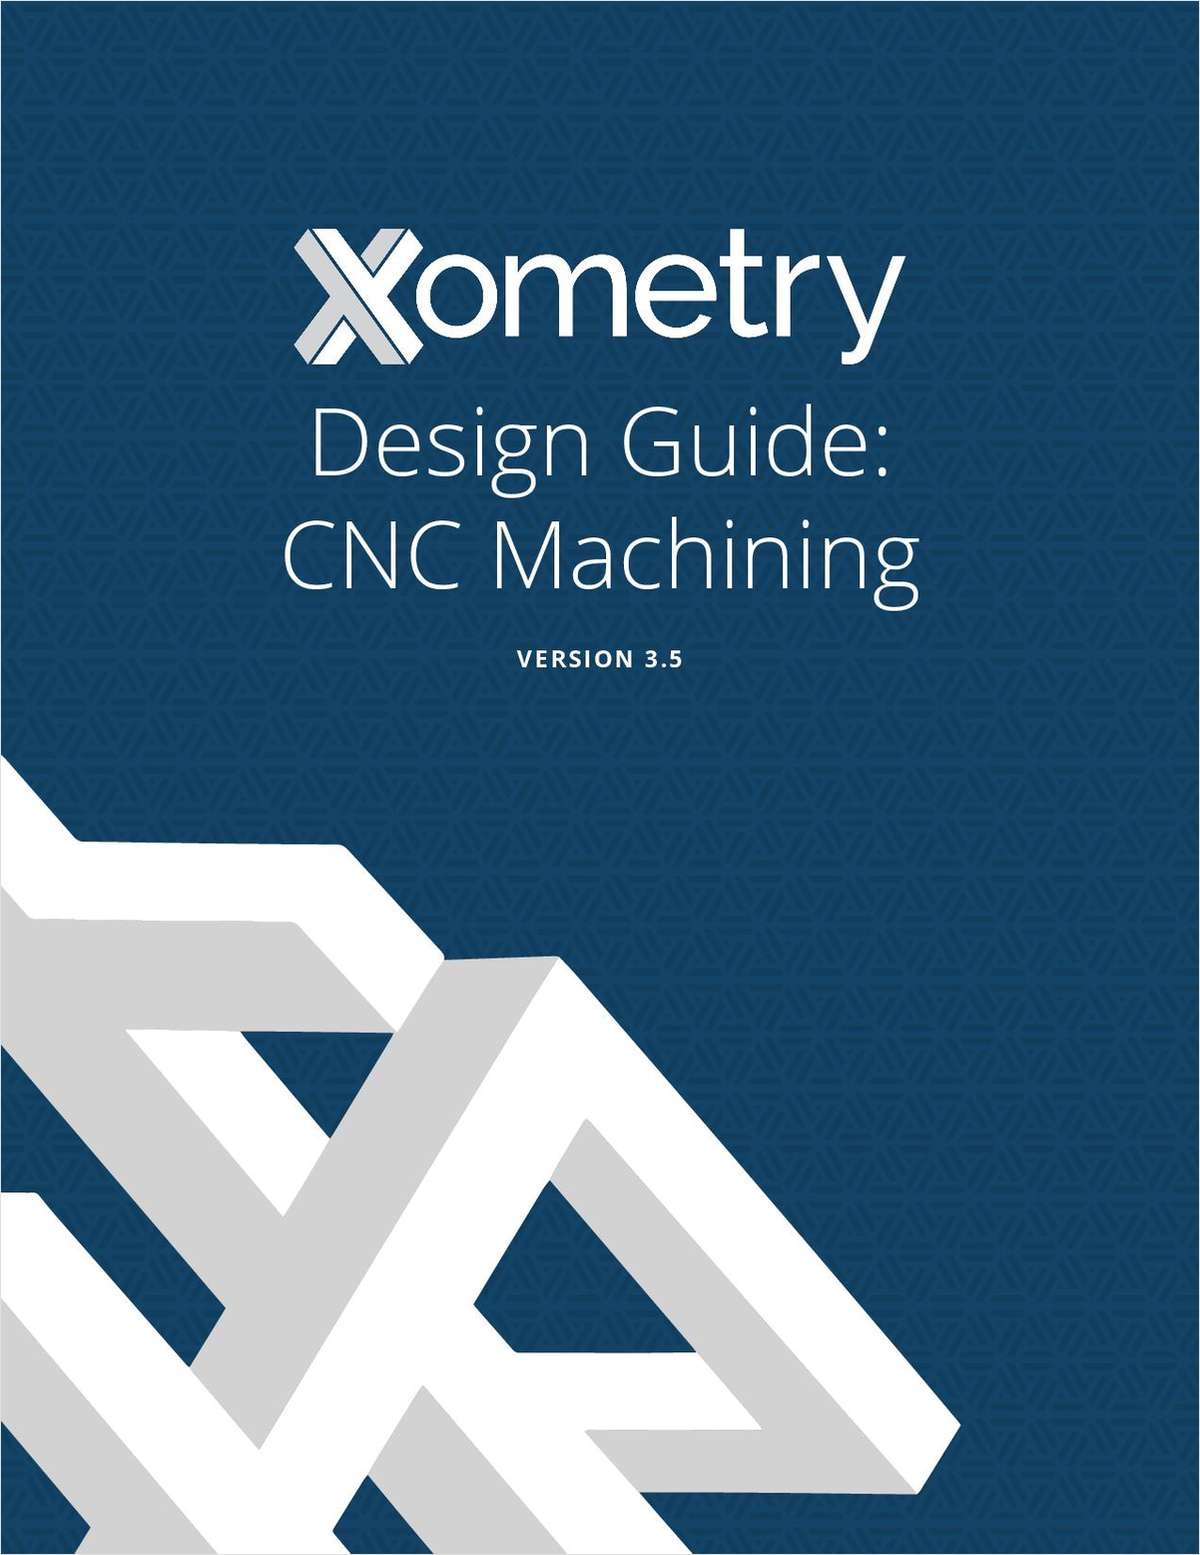 CNC Machining Design Guide